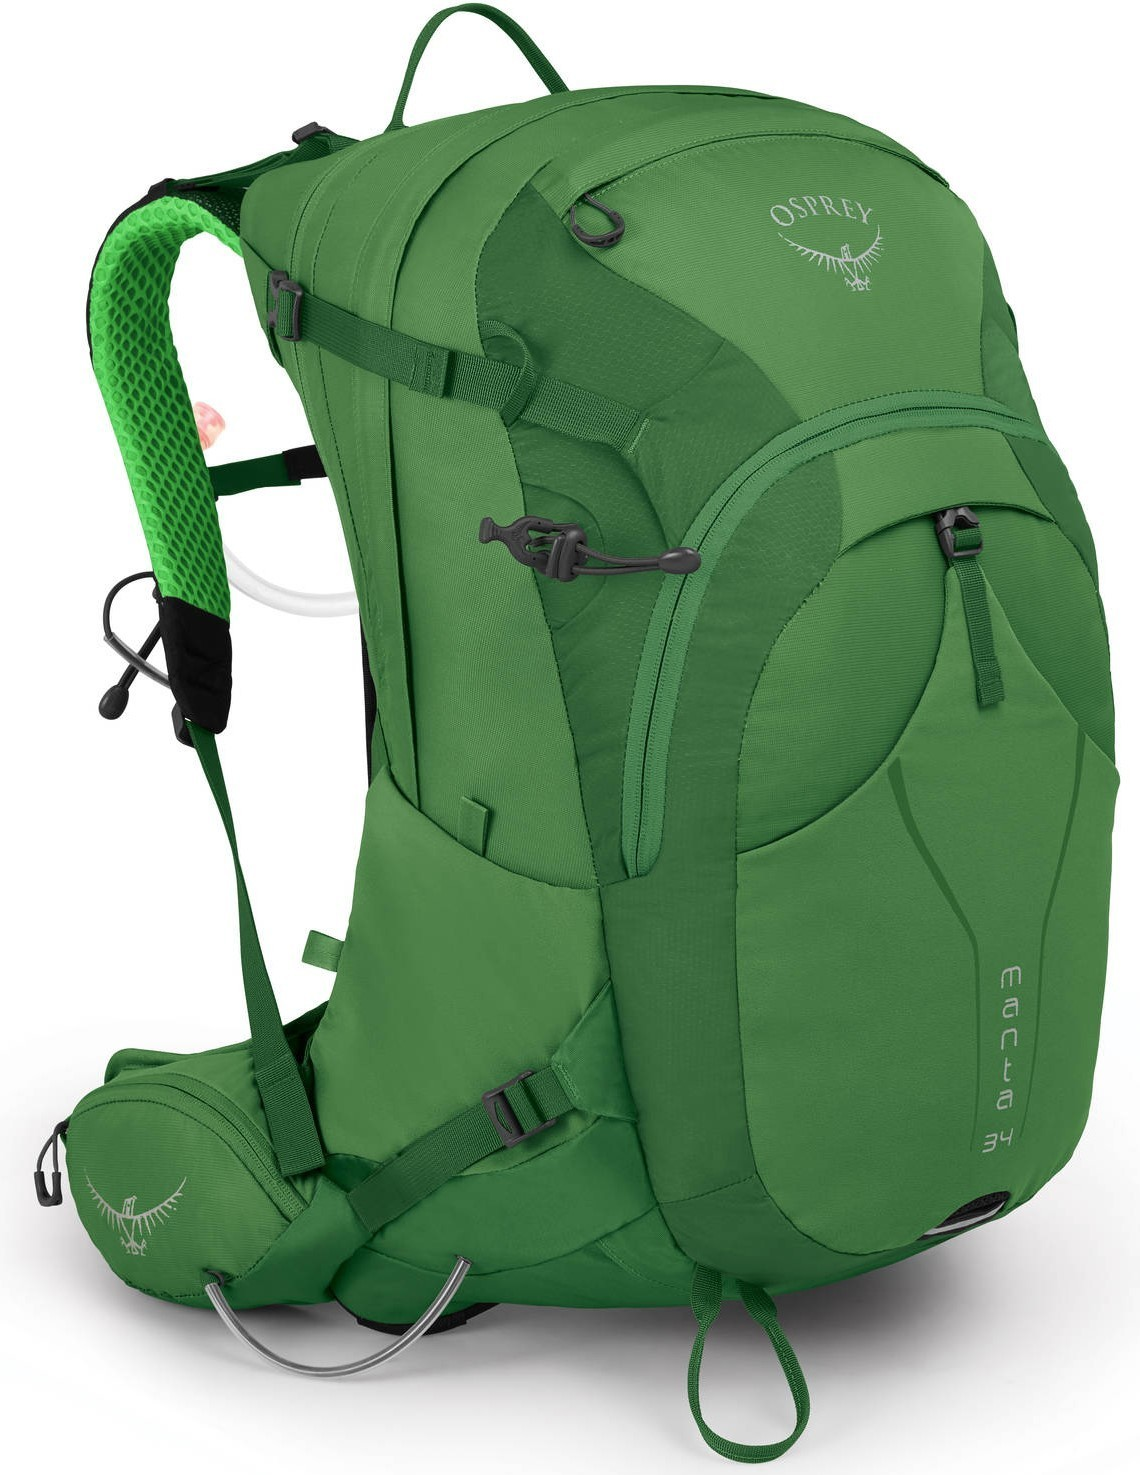 Manta Рюкзак туристический Osprey Manta 34 Green Shade Manta_34_S19_Side_Green_Shade_web.jpg